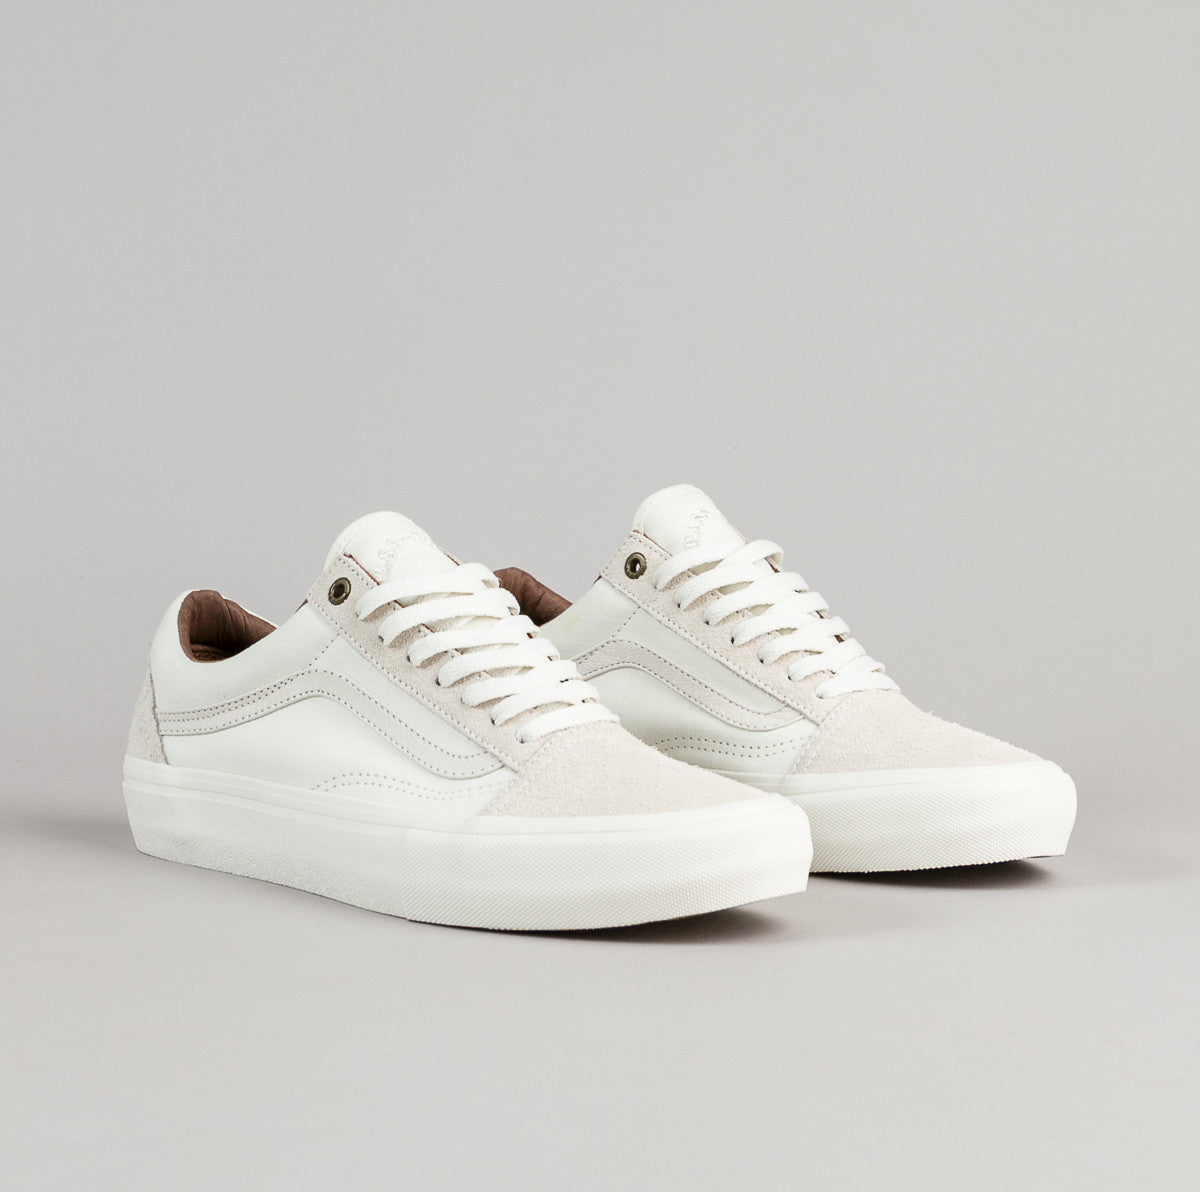 Vans x Pass Port Old Skool Pro Shoes - White